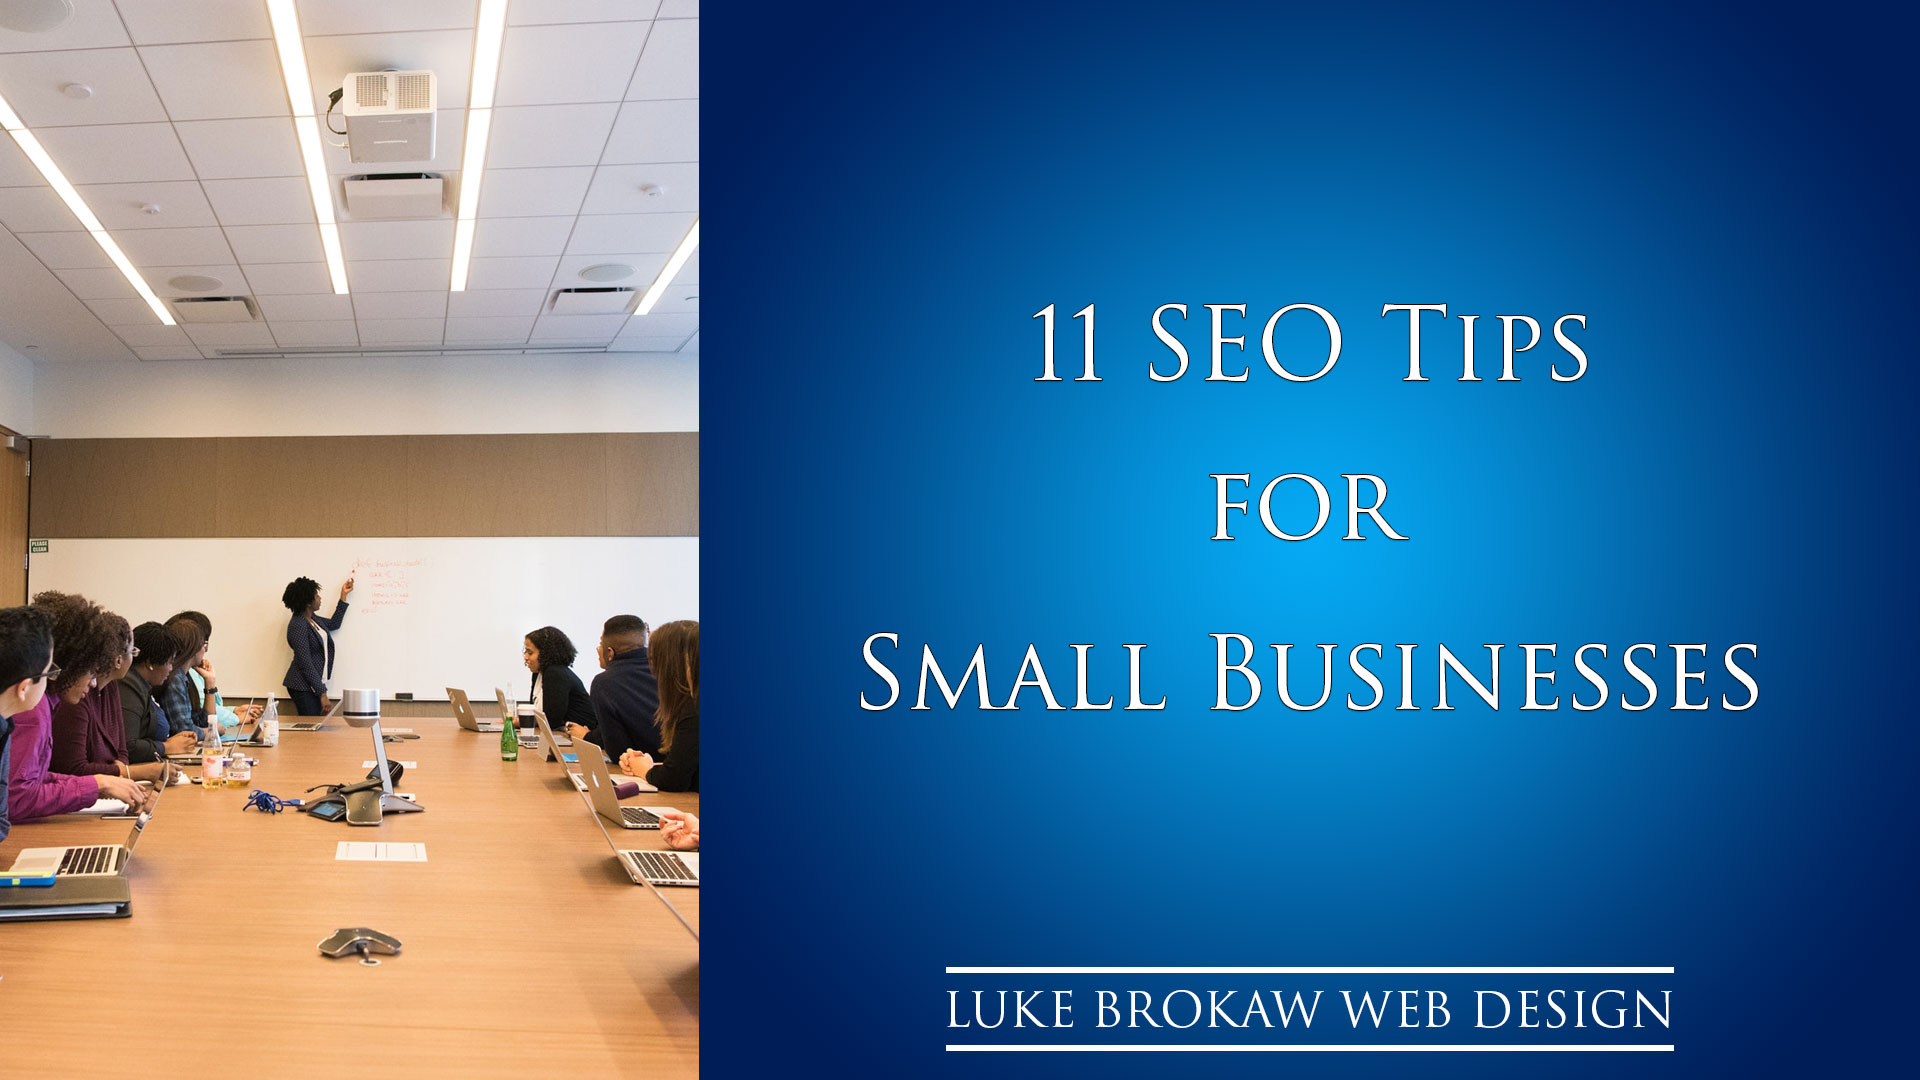 Business table teaching 11 SEO Tips for Small Businesses